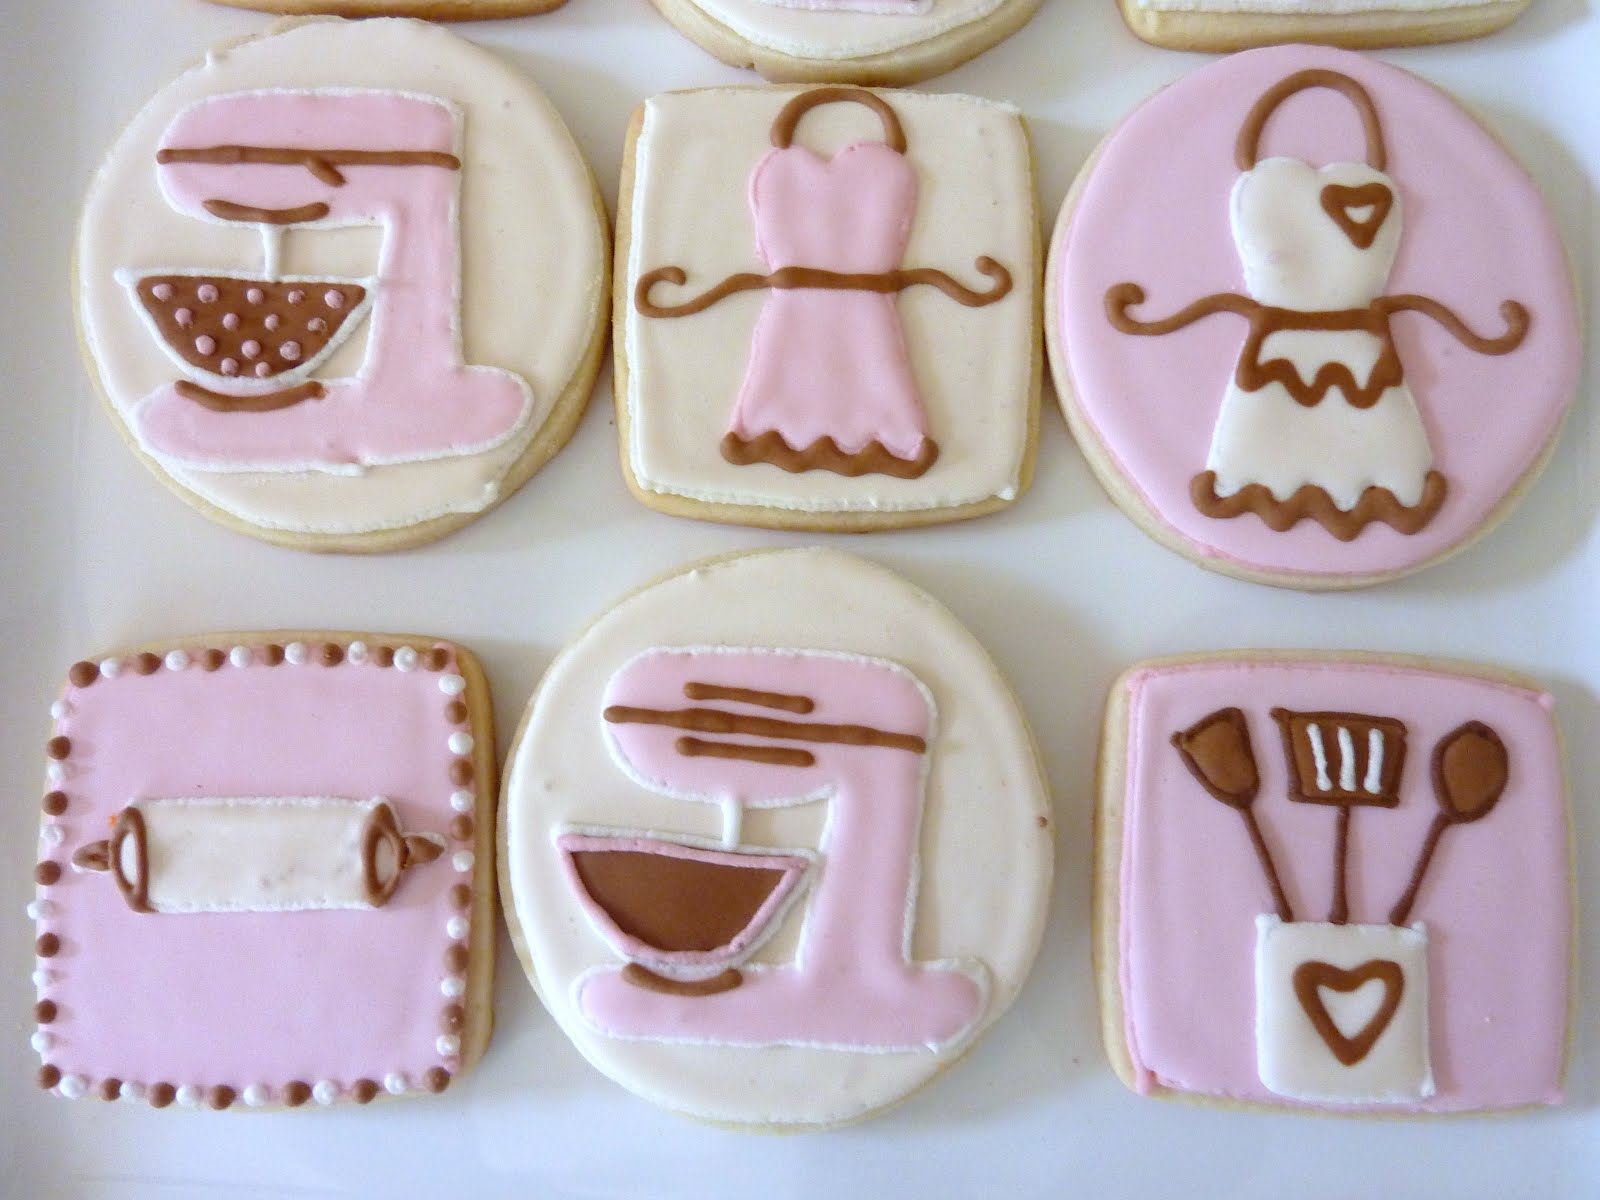 Kitchen Themed Bridal Shower The Happy Caker Kitchen Themed Bridal Shower Cookies